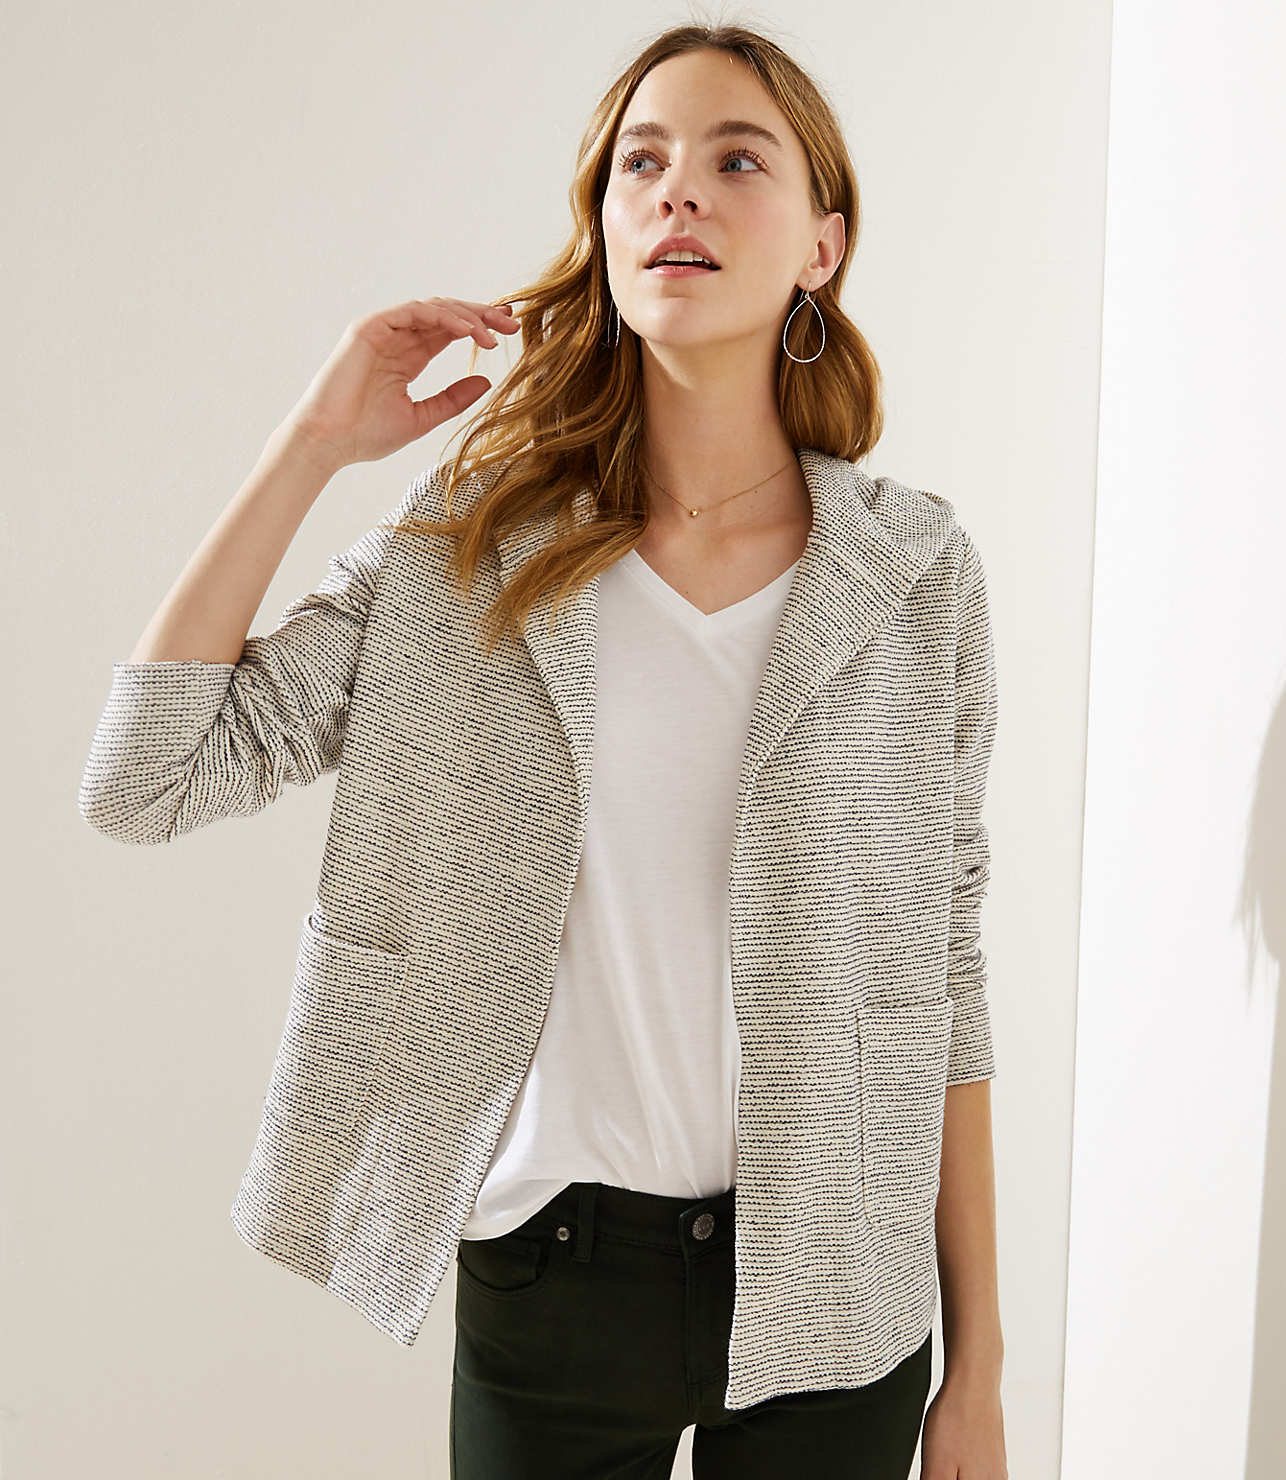 striped open hoodie jacket - so cute for winter or spring